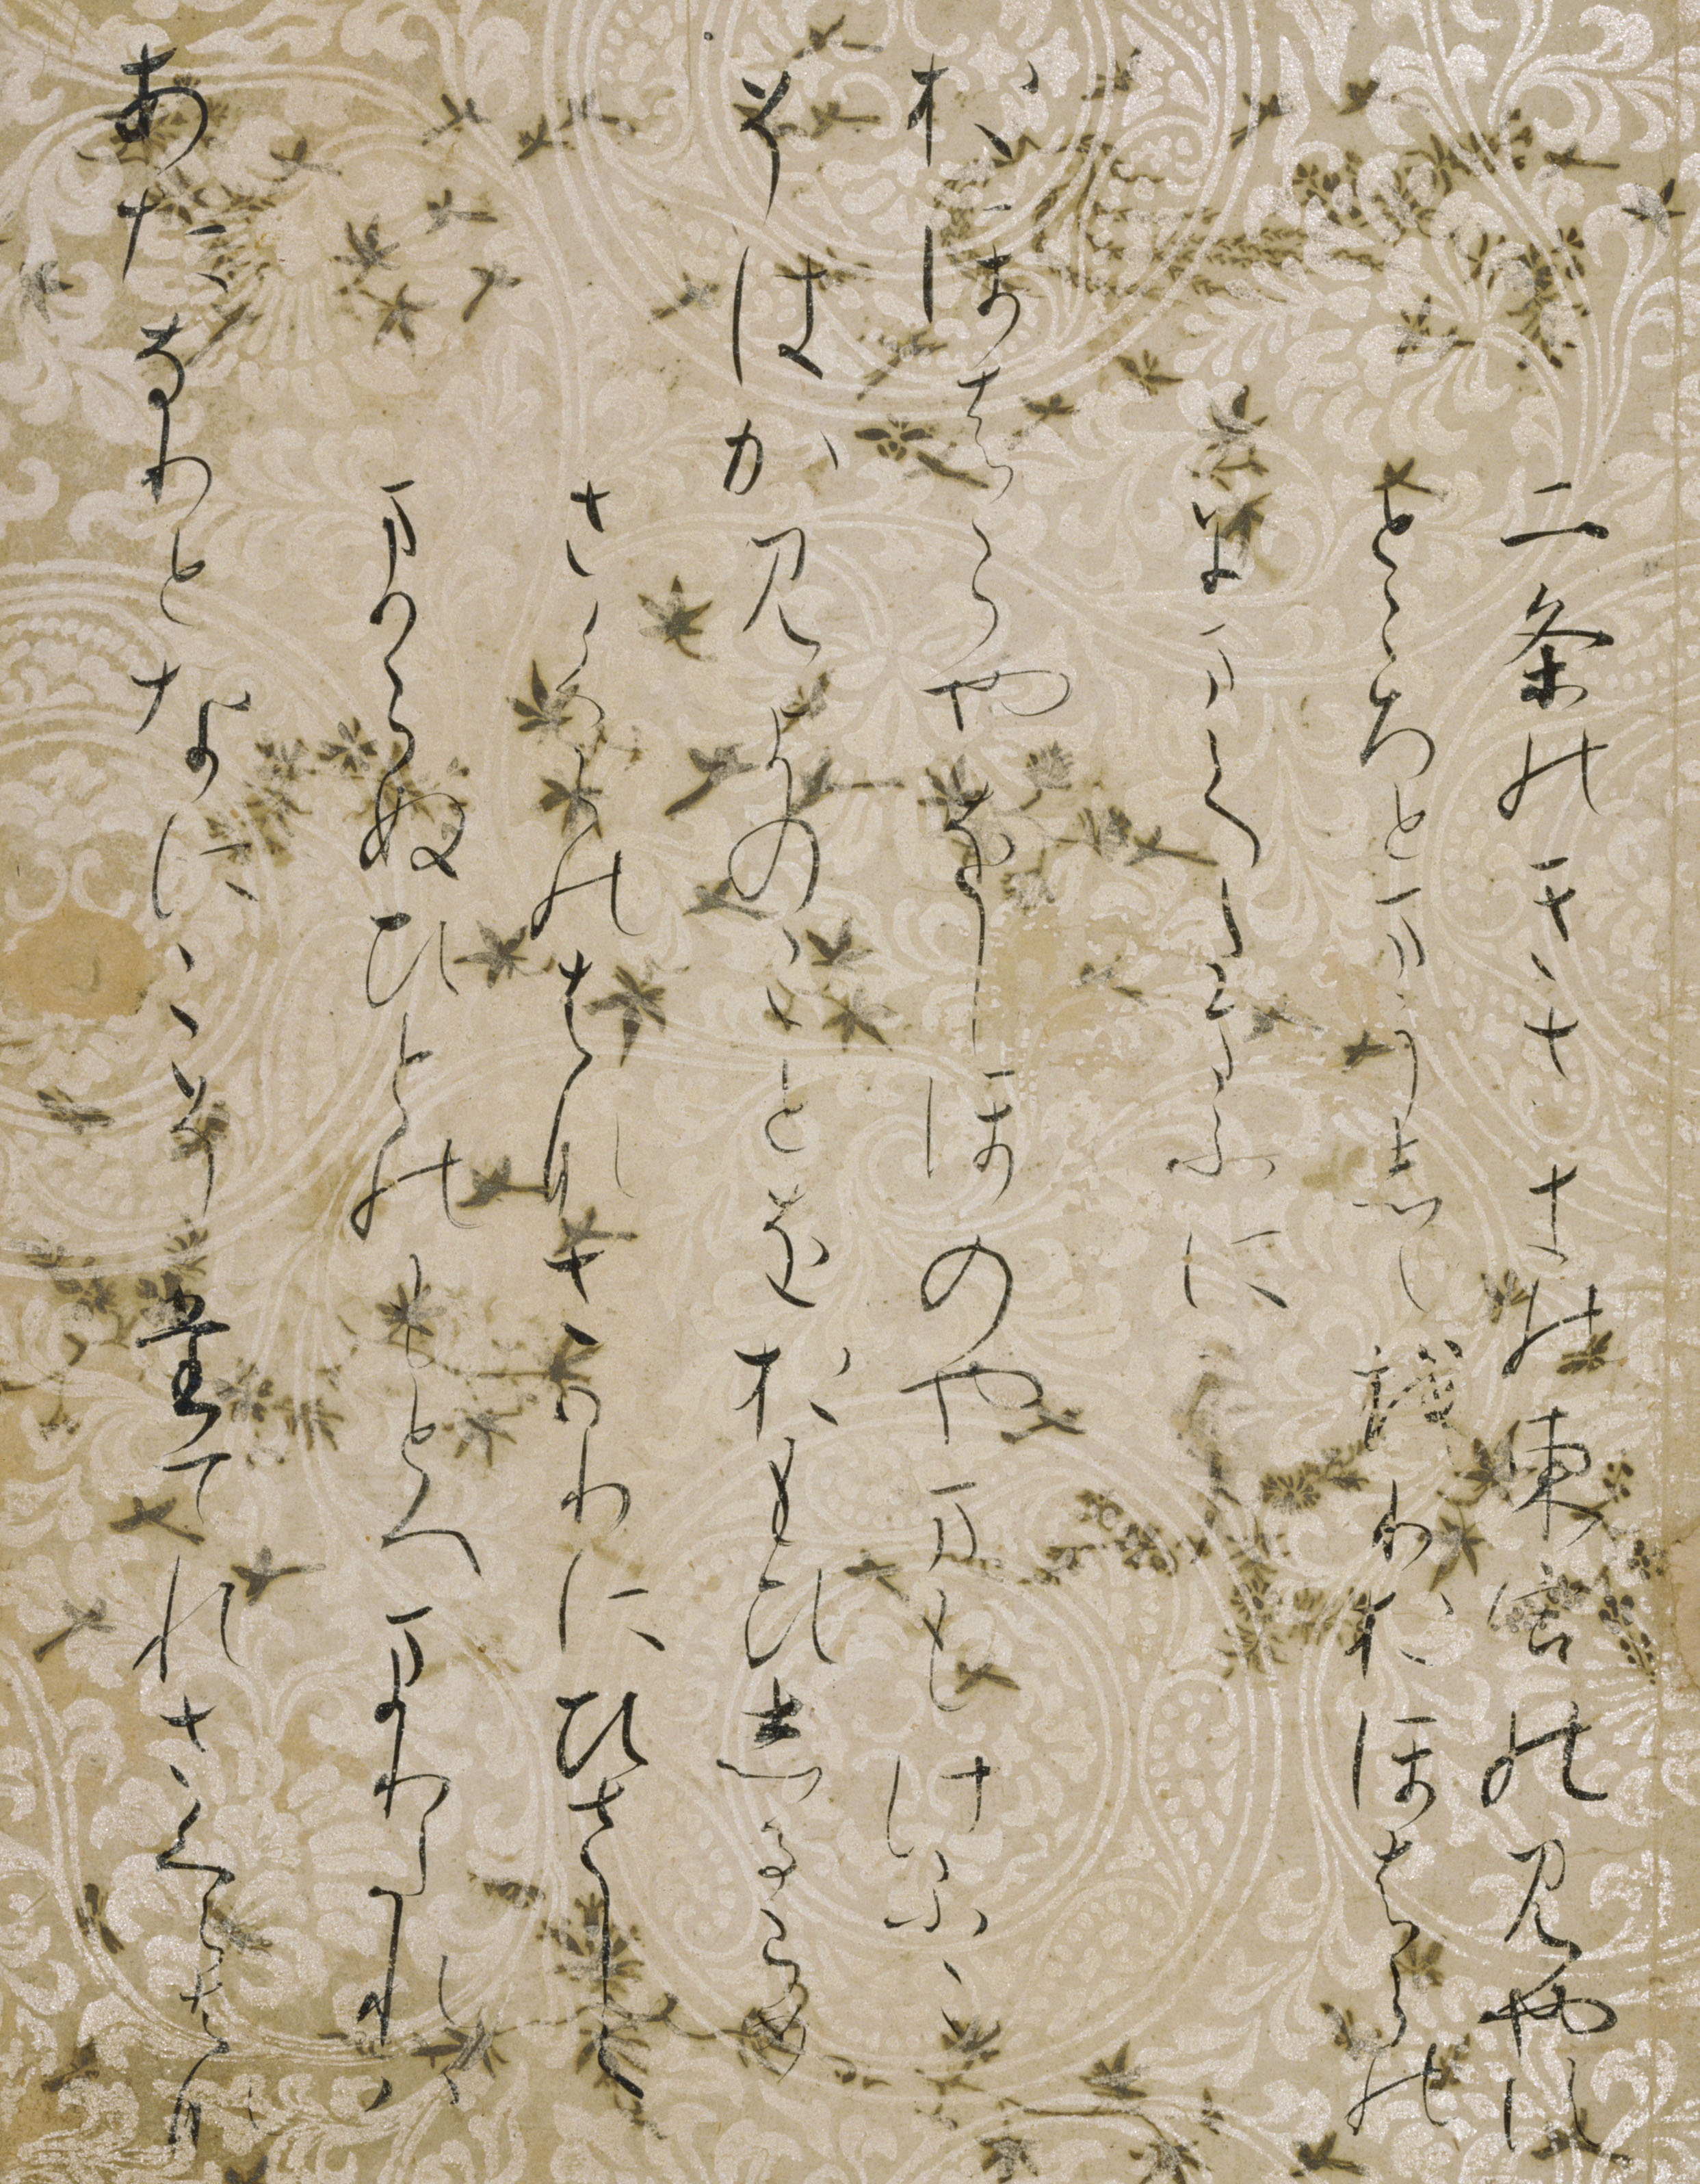 'Kohitsugire: Ancient Calligraphy Fragments'